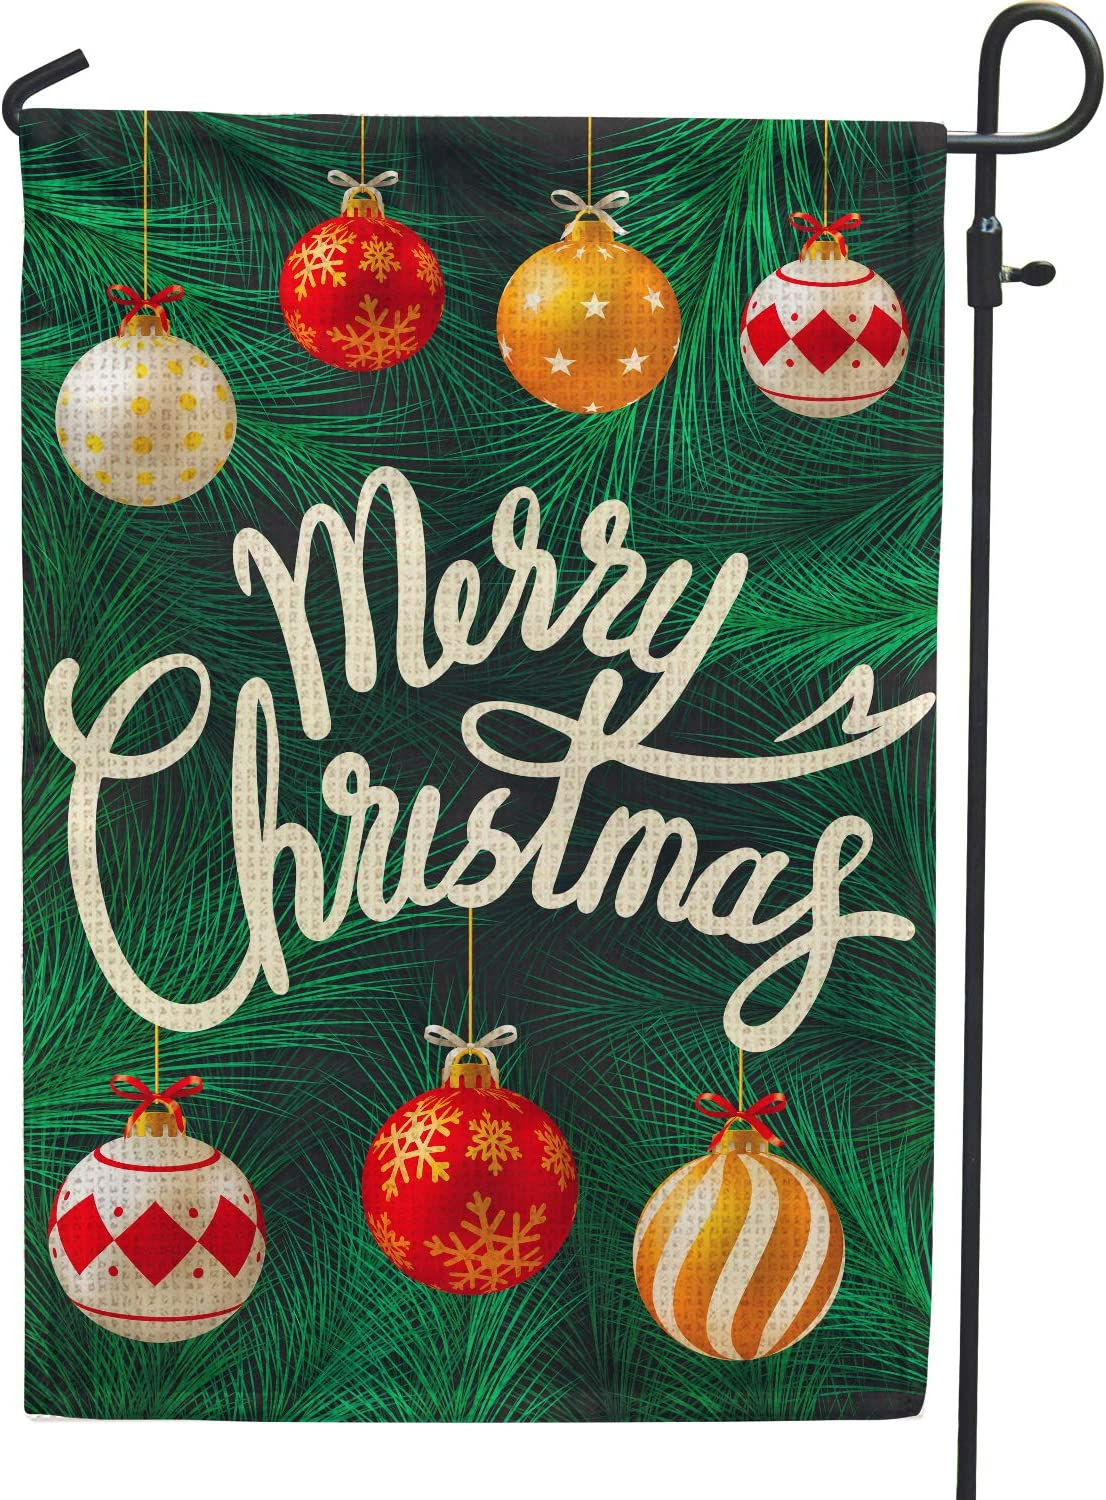 Hollyhorse Merry Christmas Garden Flags for Outside Decoration - 12x18 Double Sided Hanging Ornaments Burlap Flag Outside Decoration for Yard Outdoor Decor